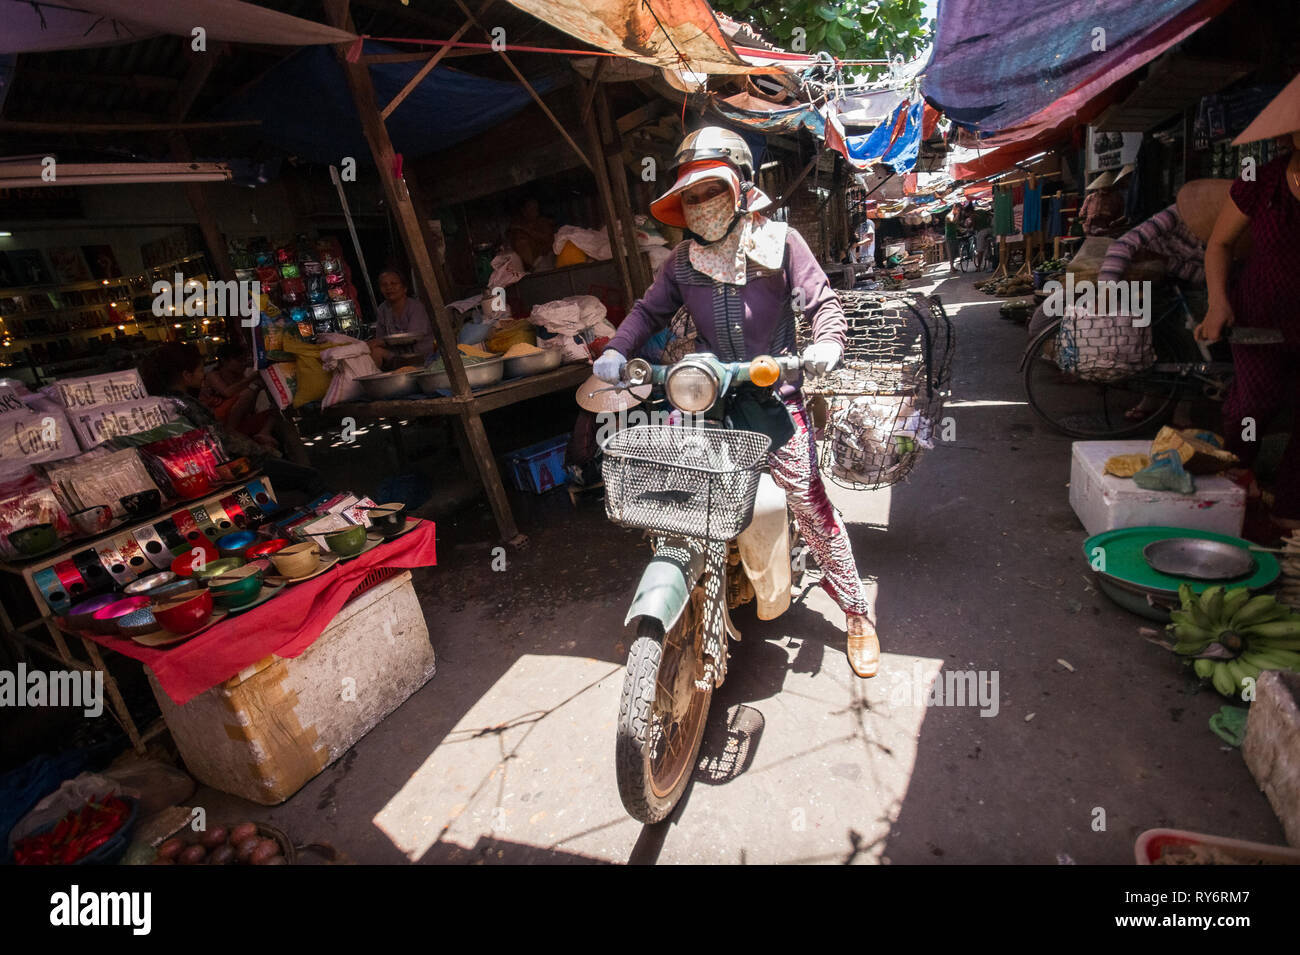 Vietnamese Delivery Woman on Motorbike in Crowded Hoi An Market, Vietnam - Stock Image